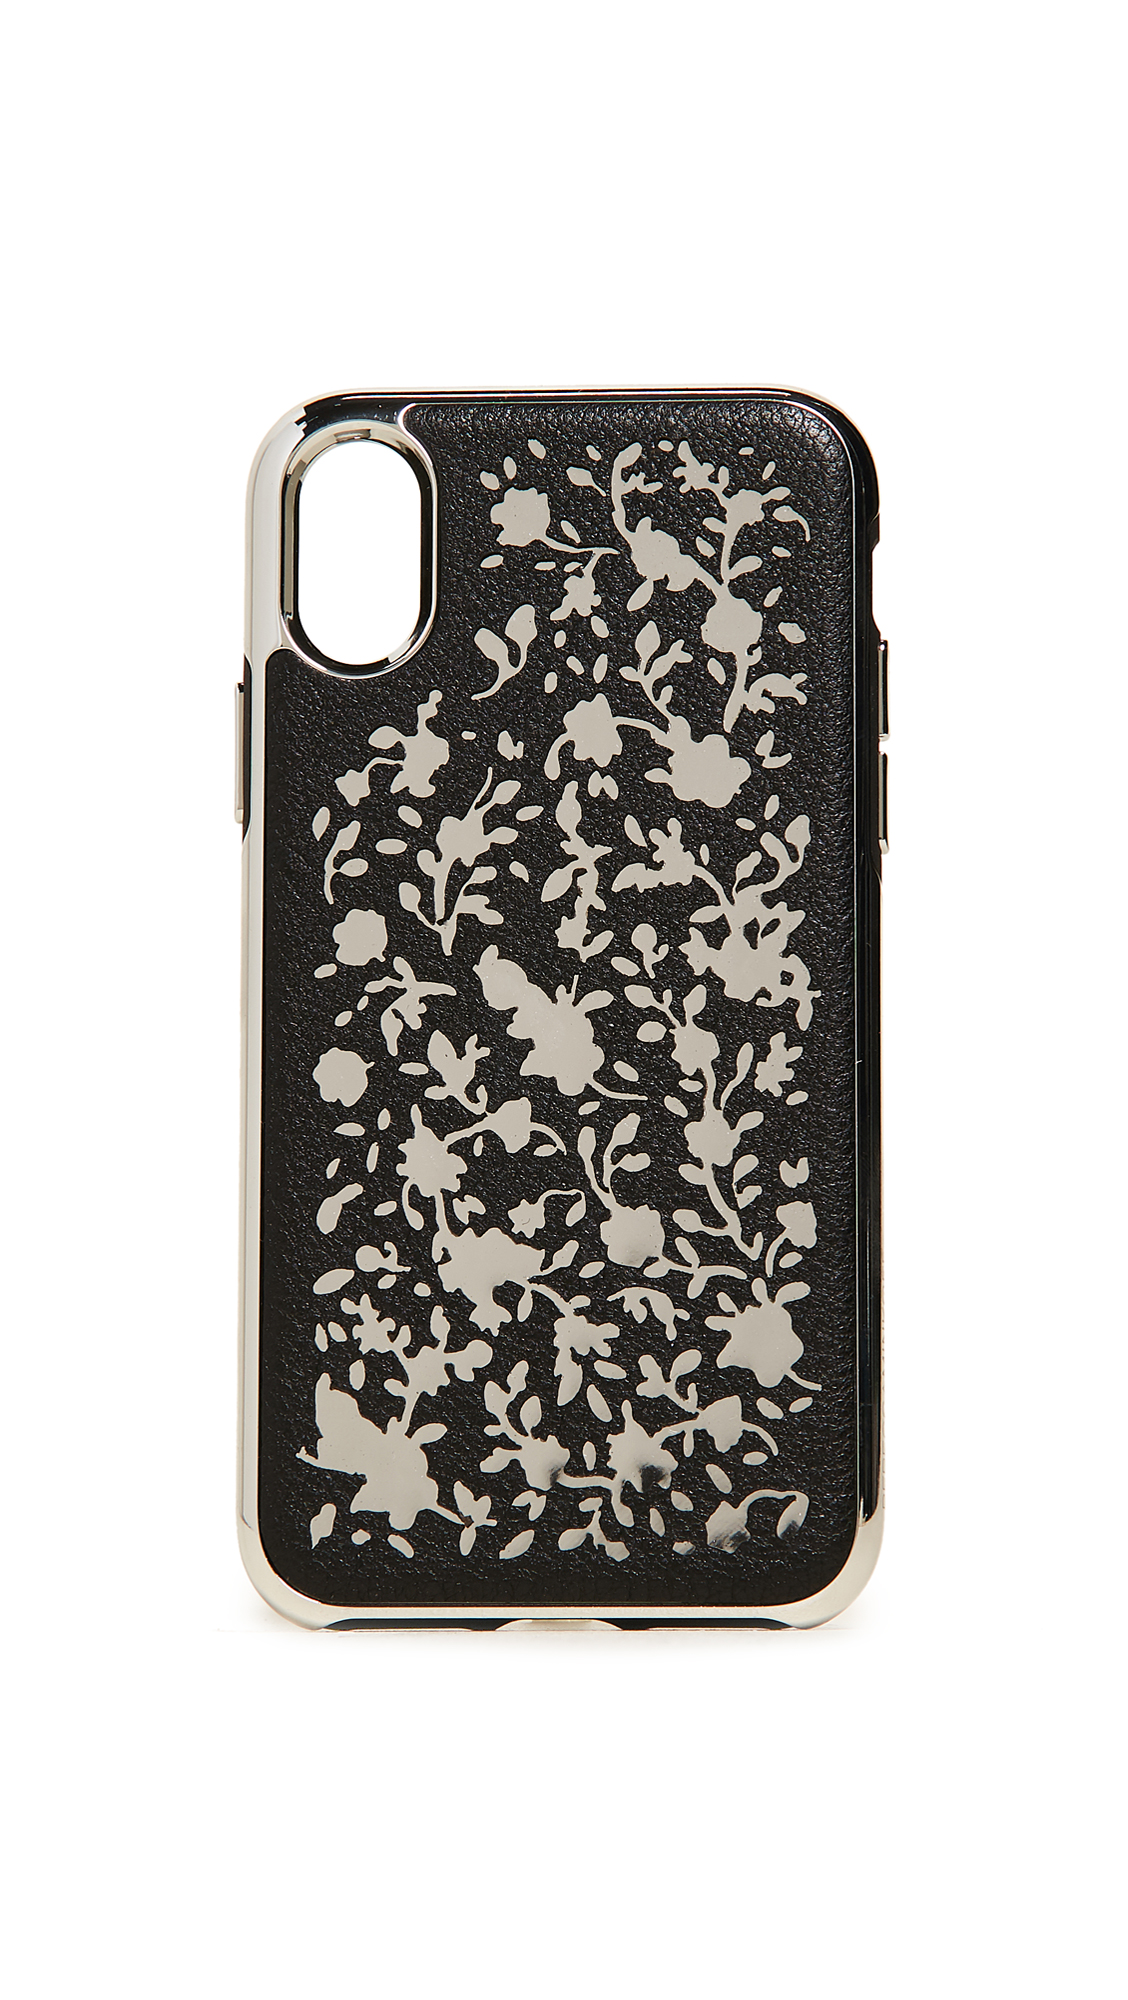 Rebecca Minkoff Ditsy Floral Laser Cut iPhone X Case - Black/Silver